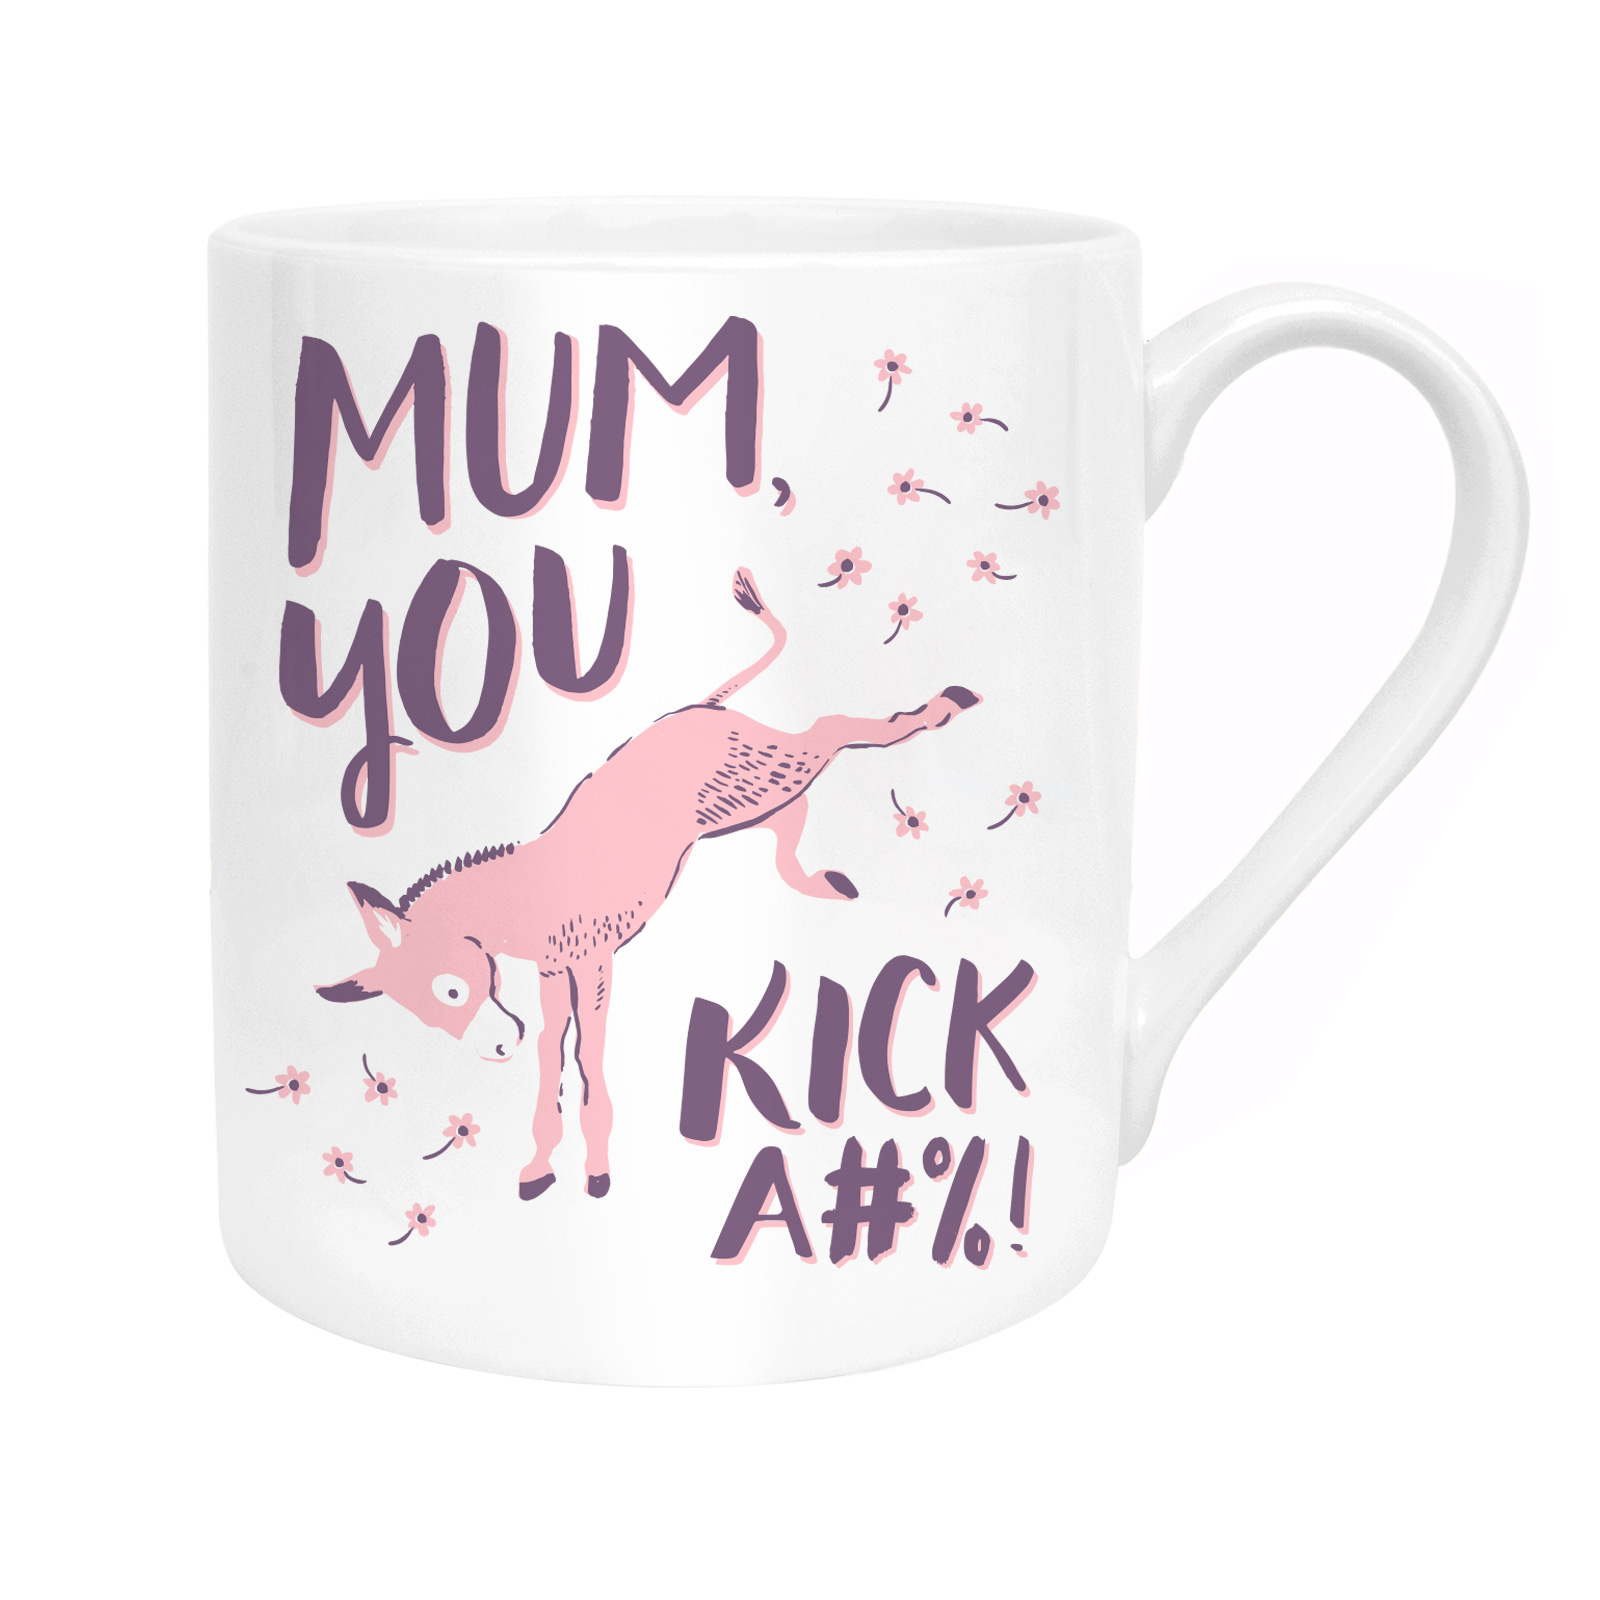 MUM, YOU KICK ASS MUG - Wanna tell your mum that she's amazing and kicks major butt? 'Cos she does - all day, erry day. This mug from Hello!Lucky is the perfect way to send out that message.